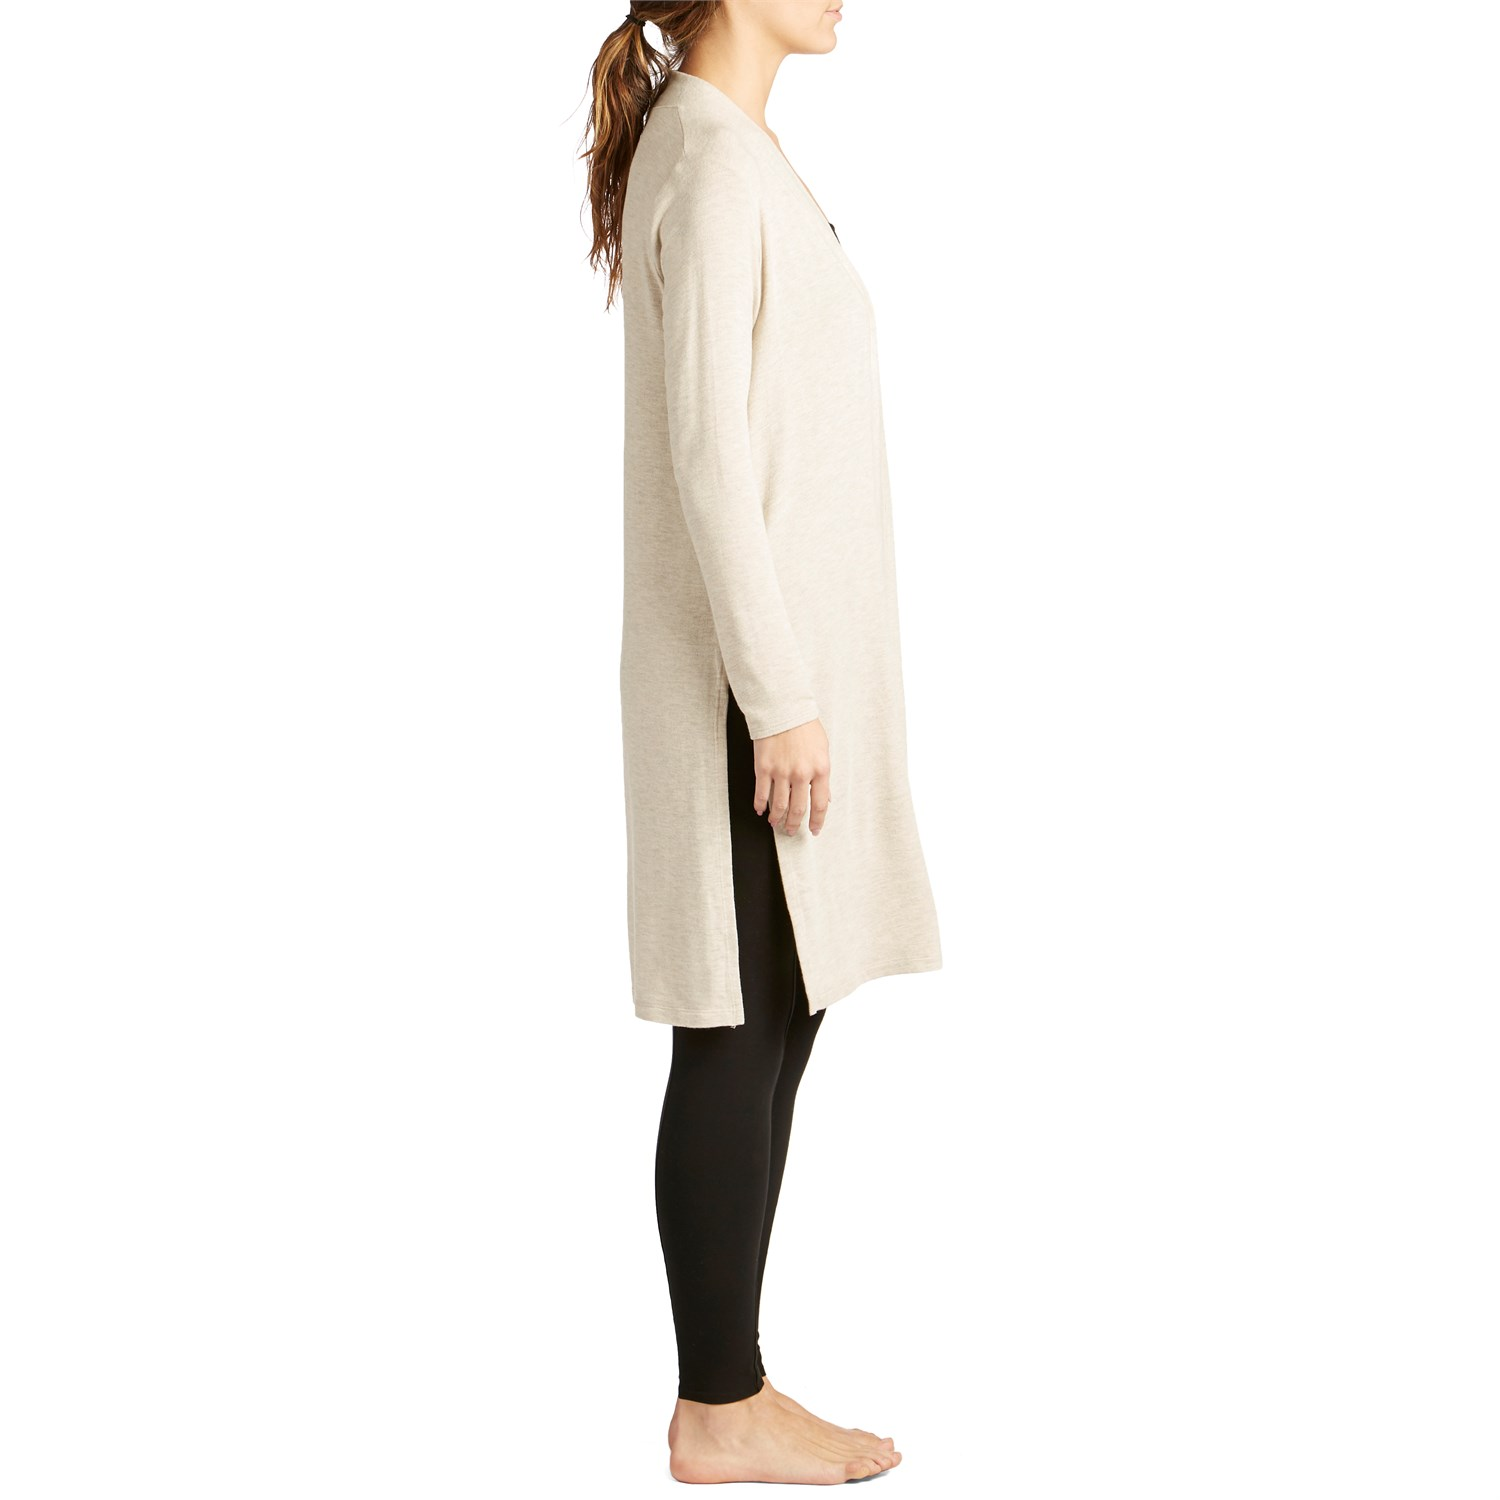 70324a5191 Beyond Yoga High Slits Long Duster - Women's | evo